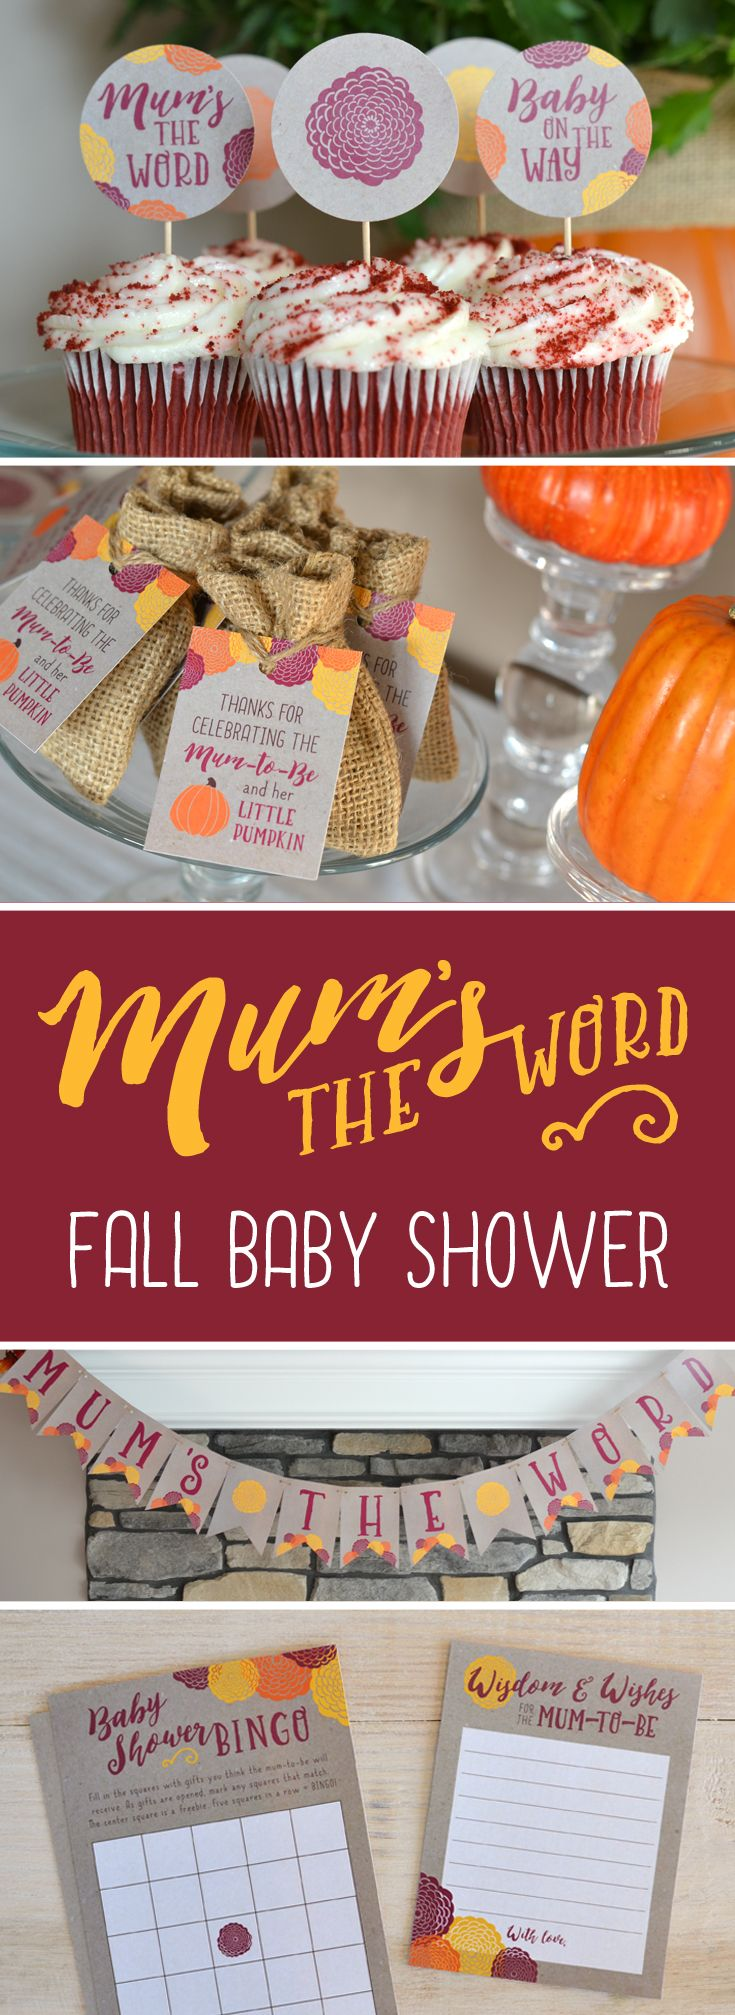 """Mum's the word! Fall mums are the center of attention at this rustic baby shower. Perfect for a gender-neutral shower celebrating the """"mum-to-be""""! Printable invitation, decorations and activities available at http://etsy.me/2dygNX6."""